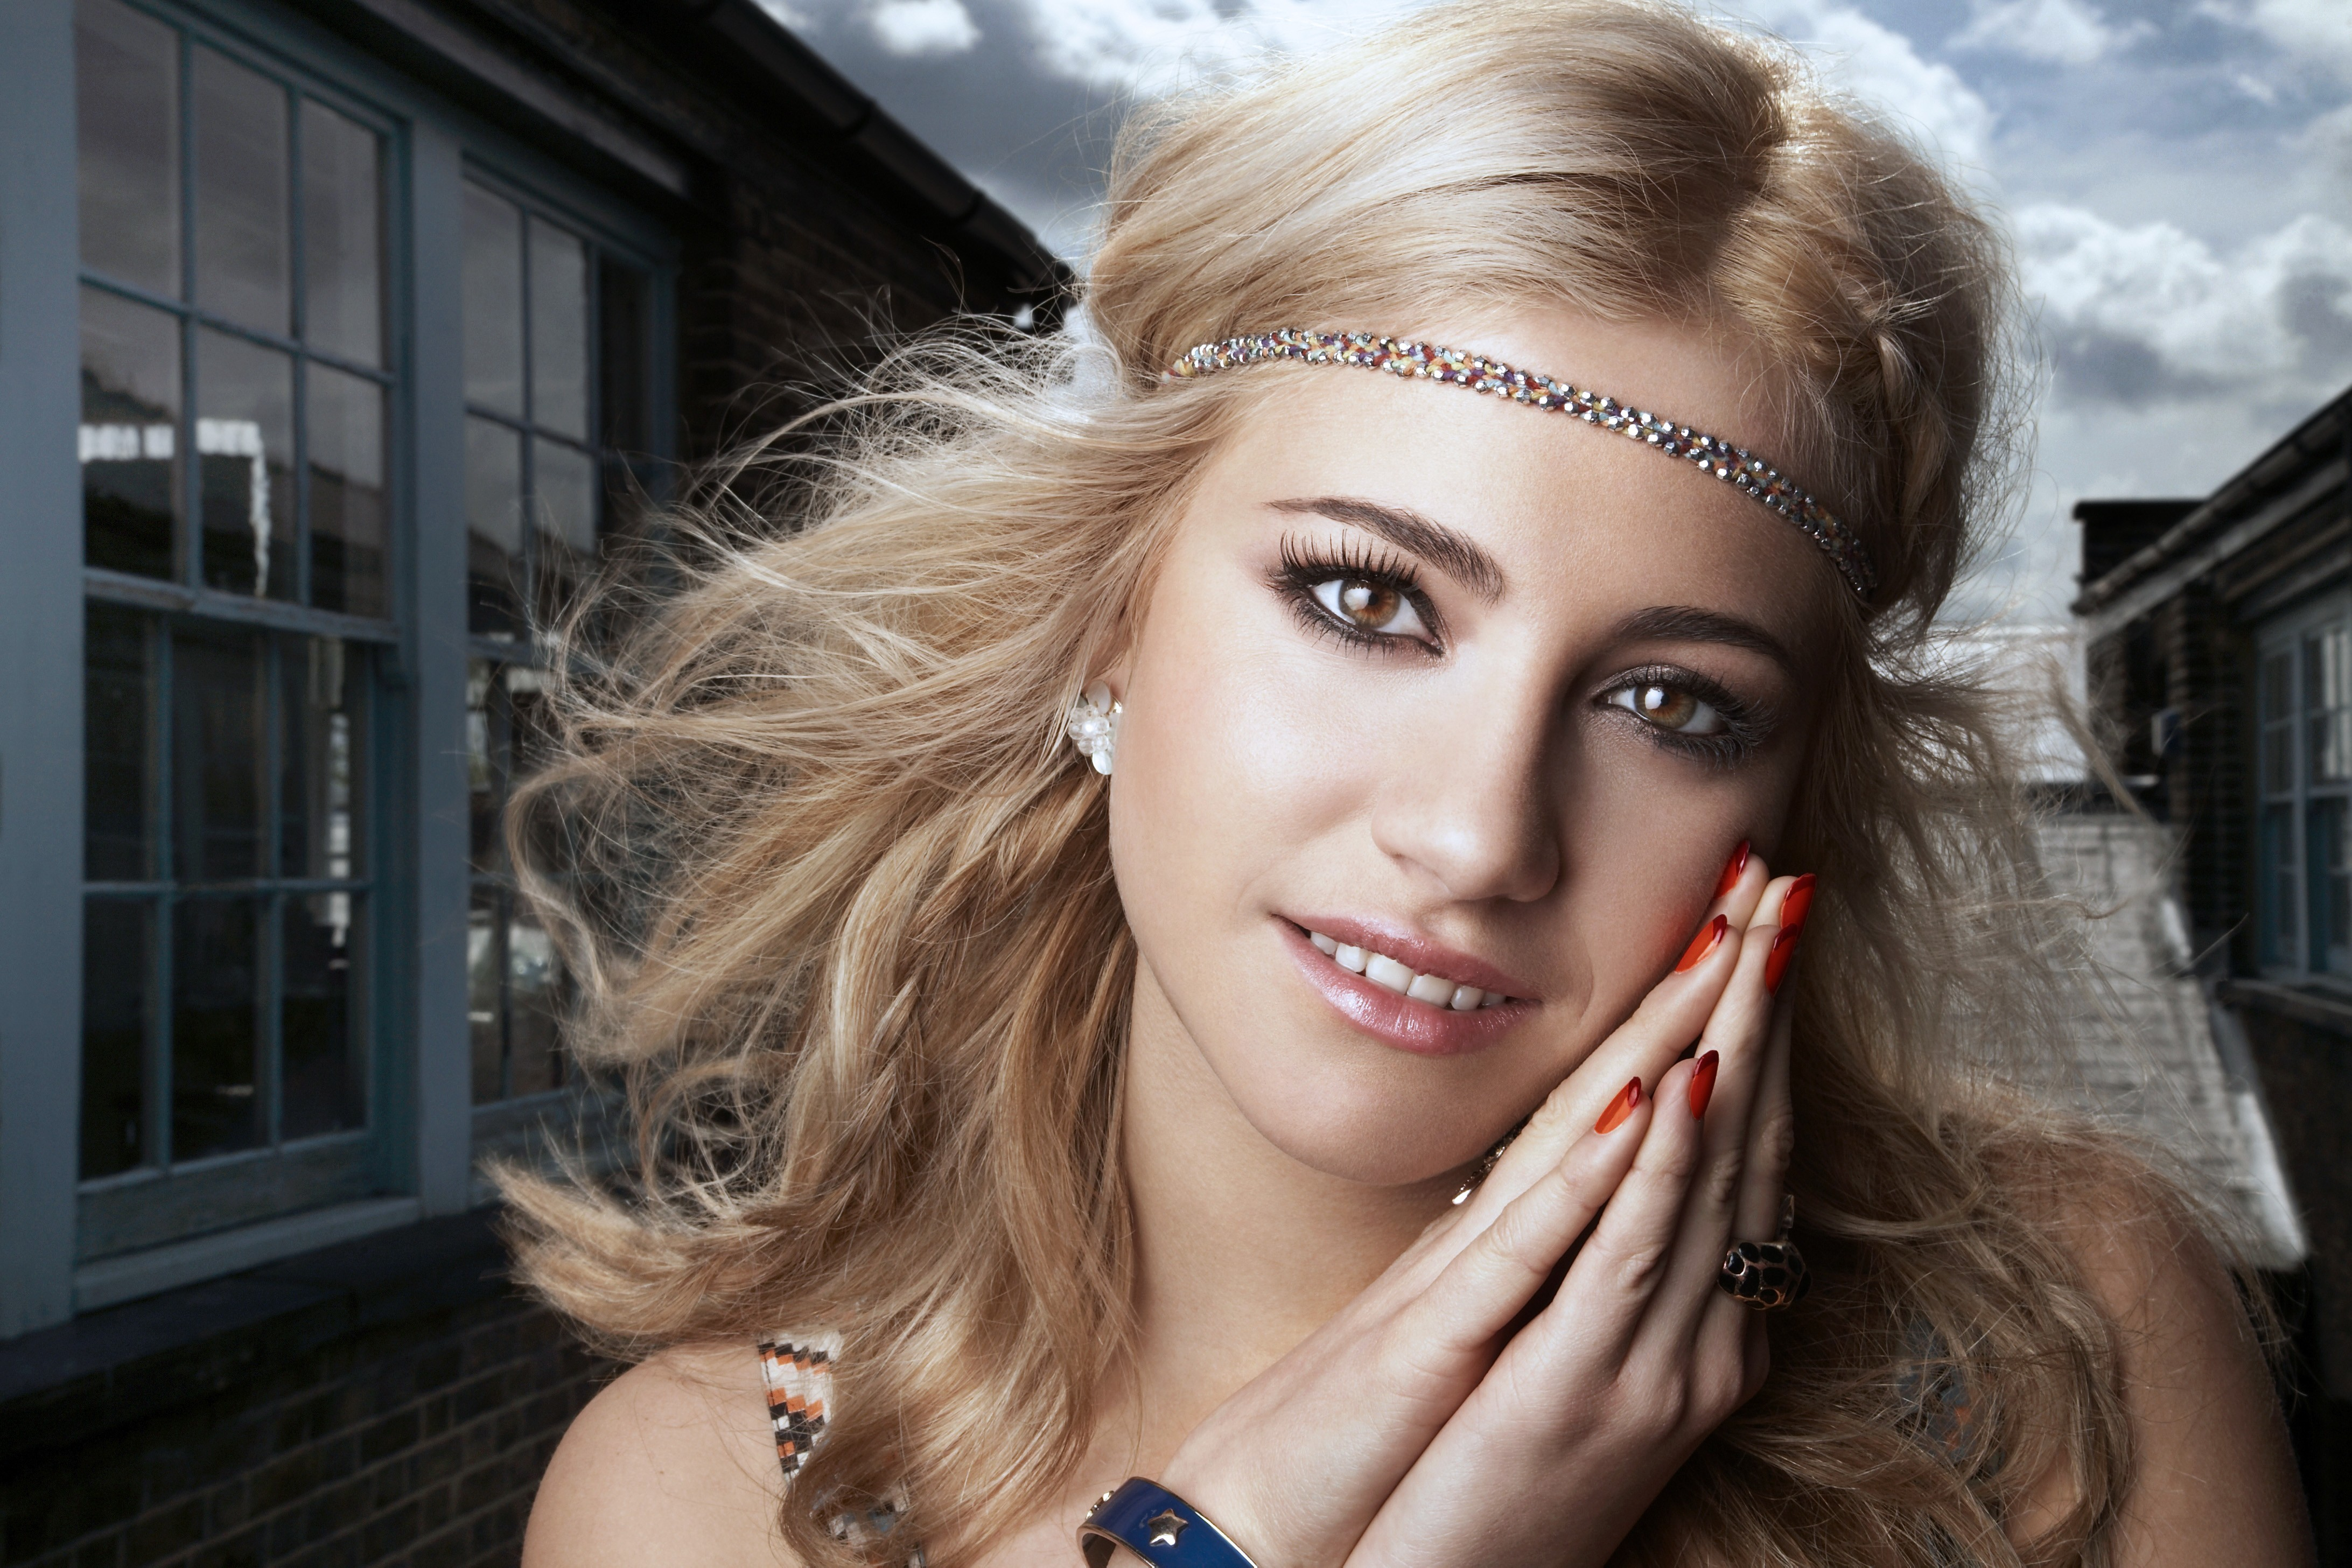 woman Music pixie lott